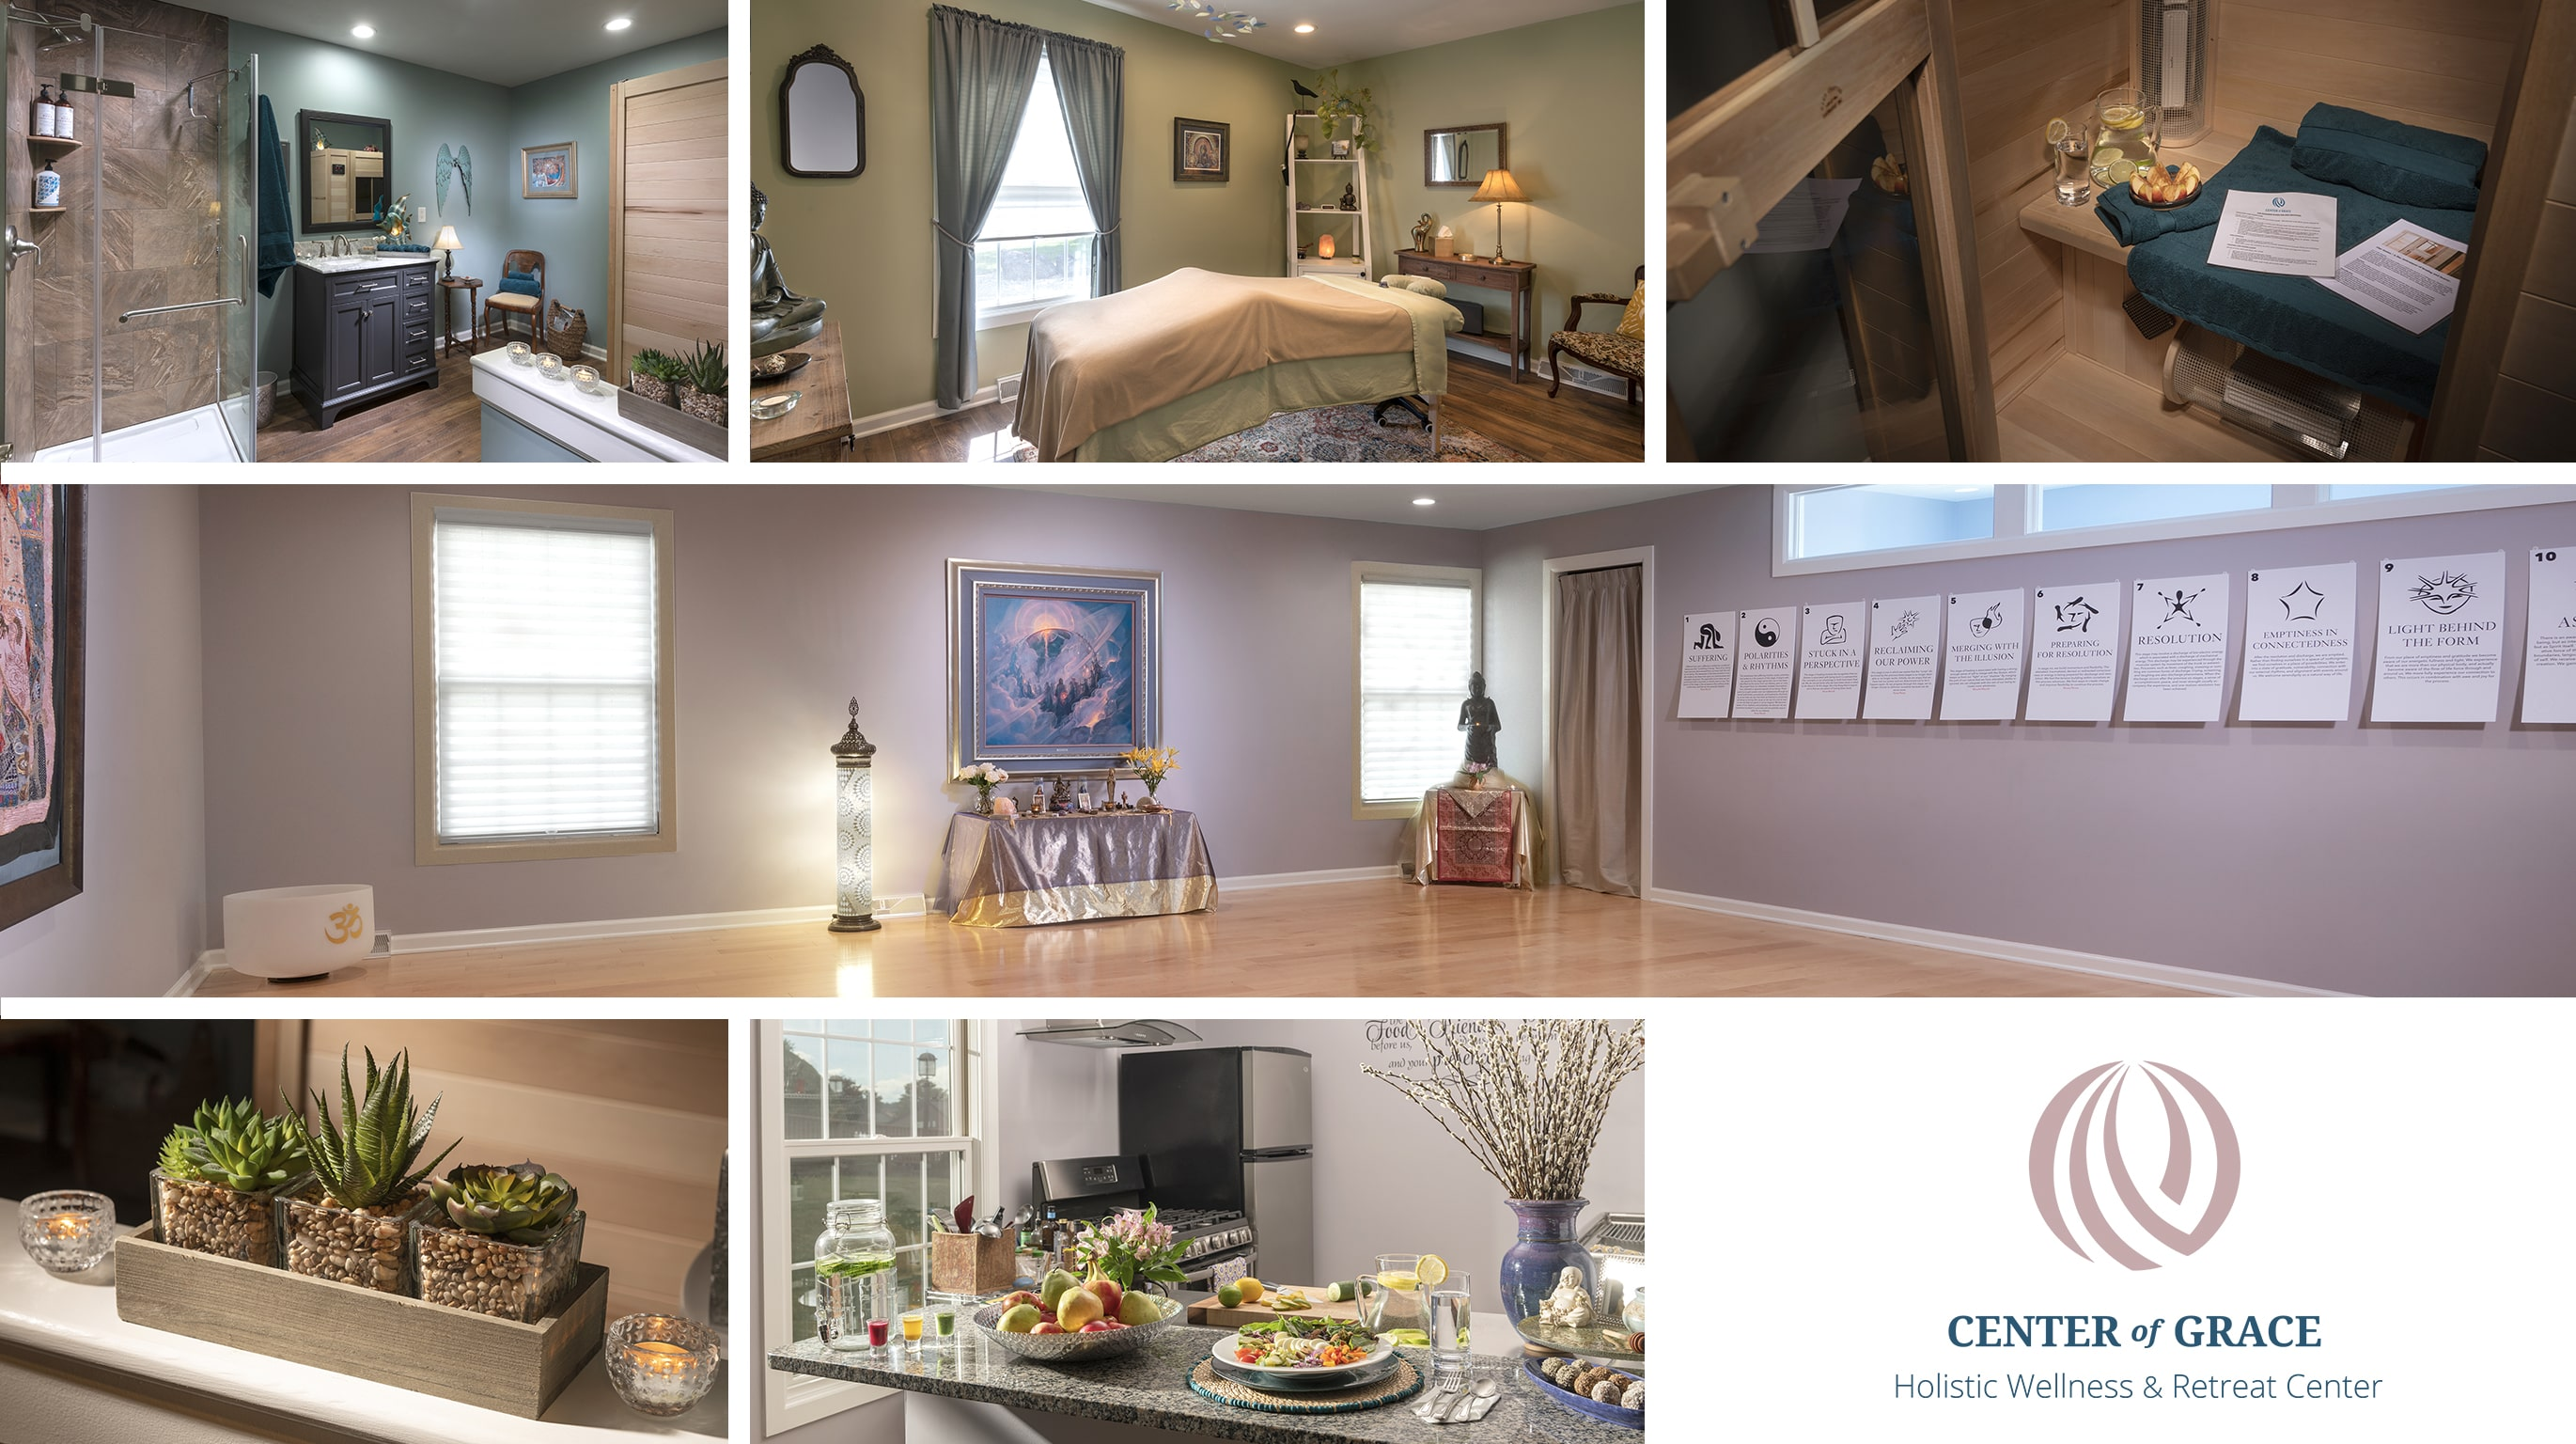 A collage of images of serene and tranquil areas of a wellness retreat